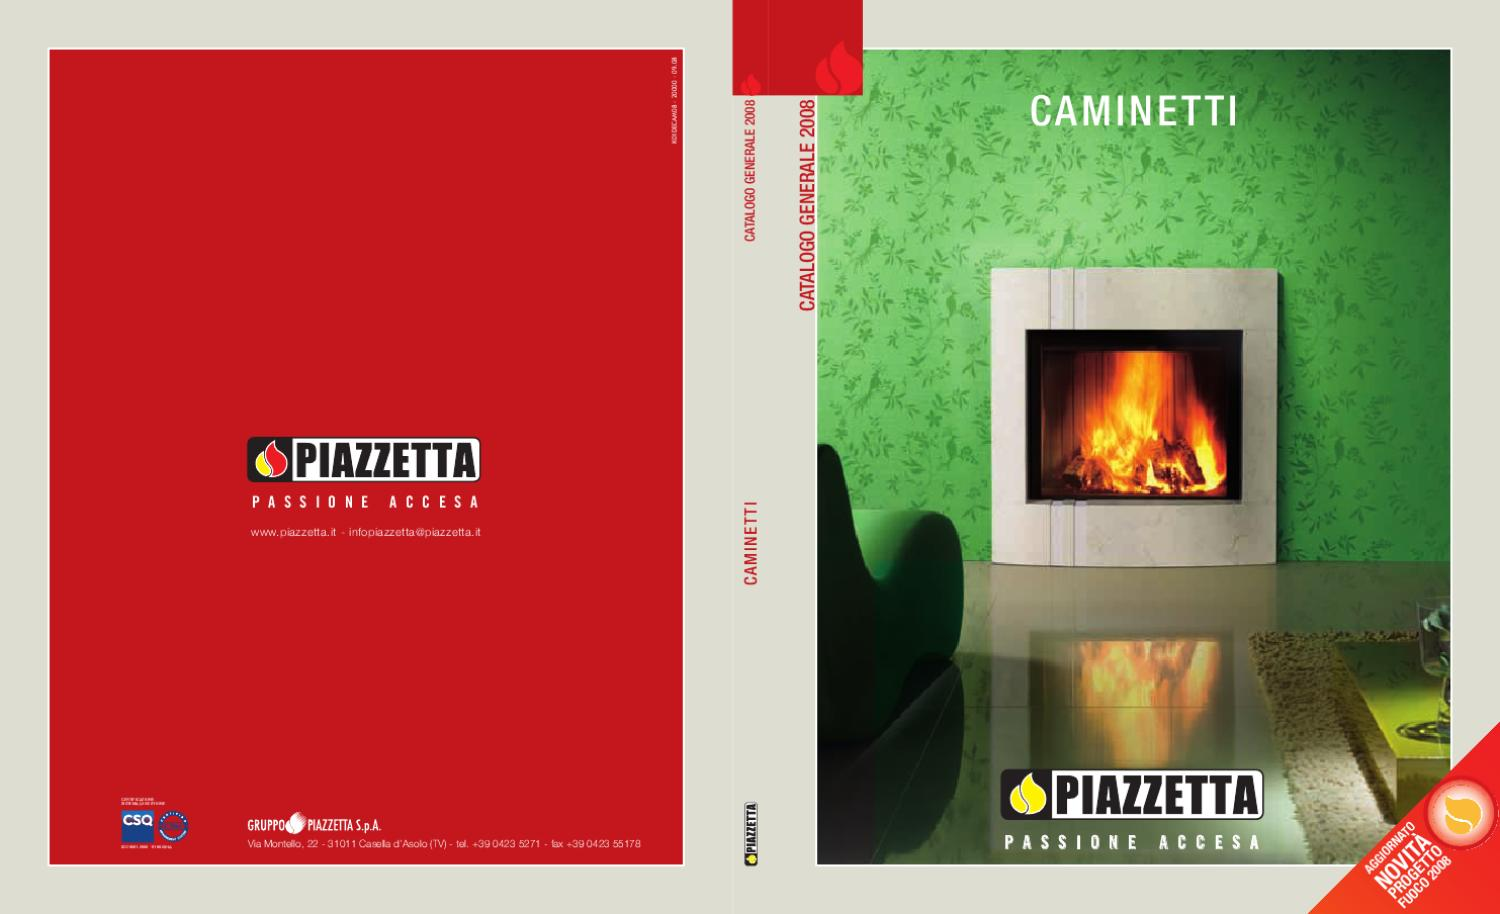 Ventilatore Camino Piazzetta Piazzetta Italian Fireplaces By Bmf Limited Issuu